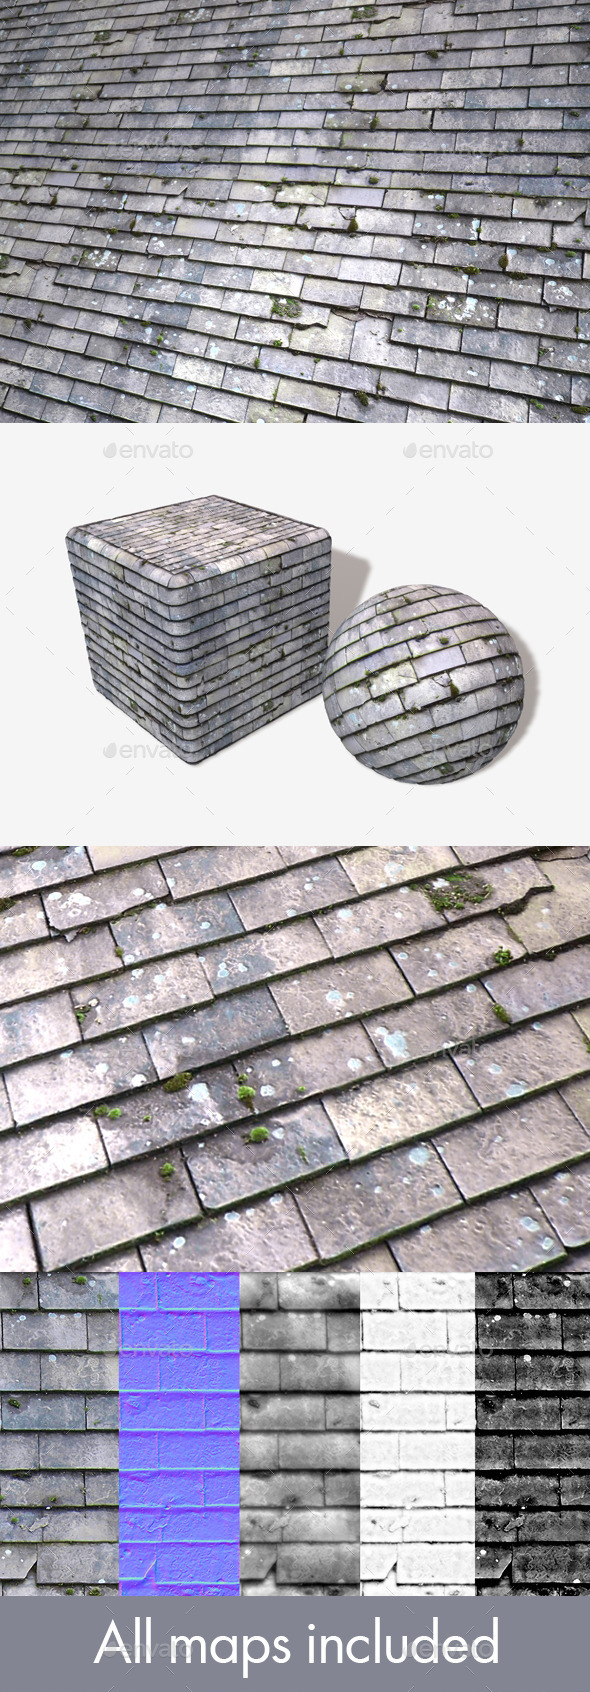 Mossy Slate Roof Tiles Seamless Texture - 3DOcean Item for Sale